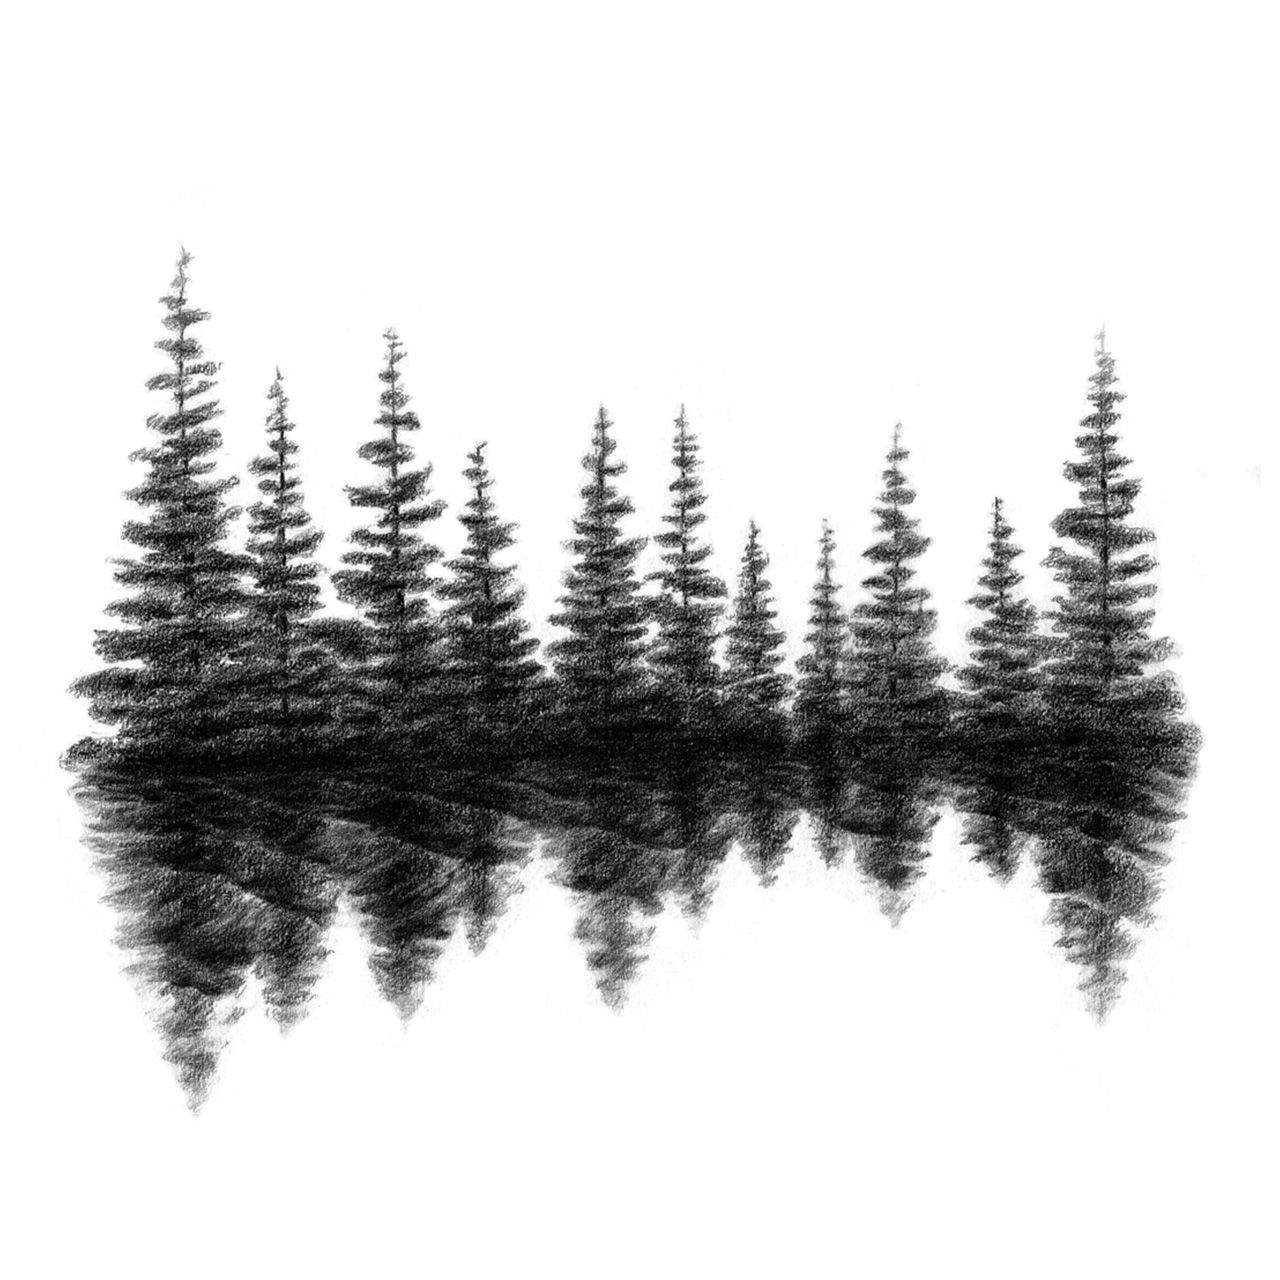 Tree Line Art Design : Evergreen tree line silhouette embroidery pinterest